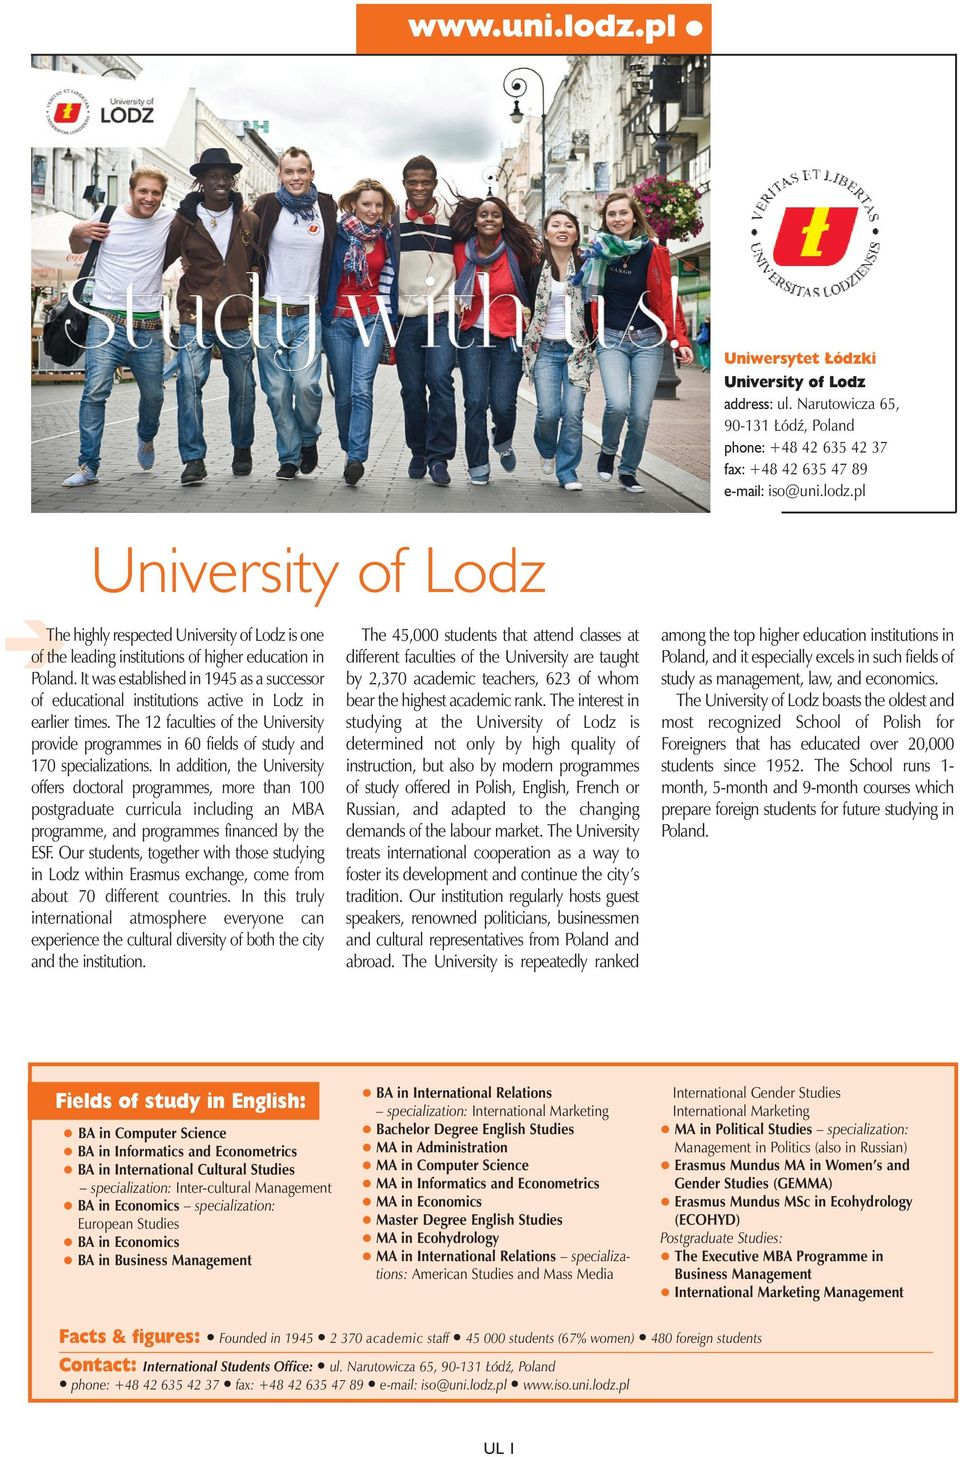 The 12 faculties of the University provide programmes in 60 fields of study and 170 specializations.